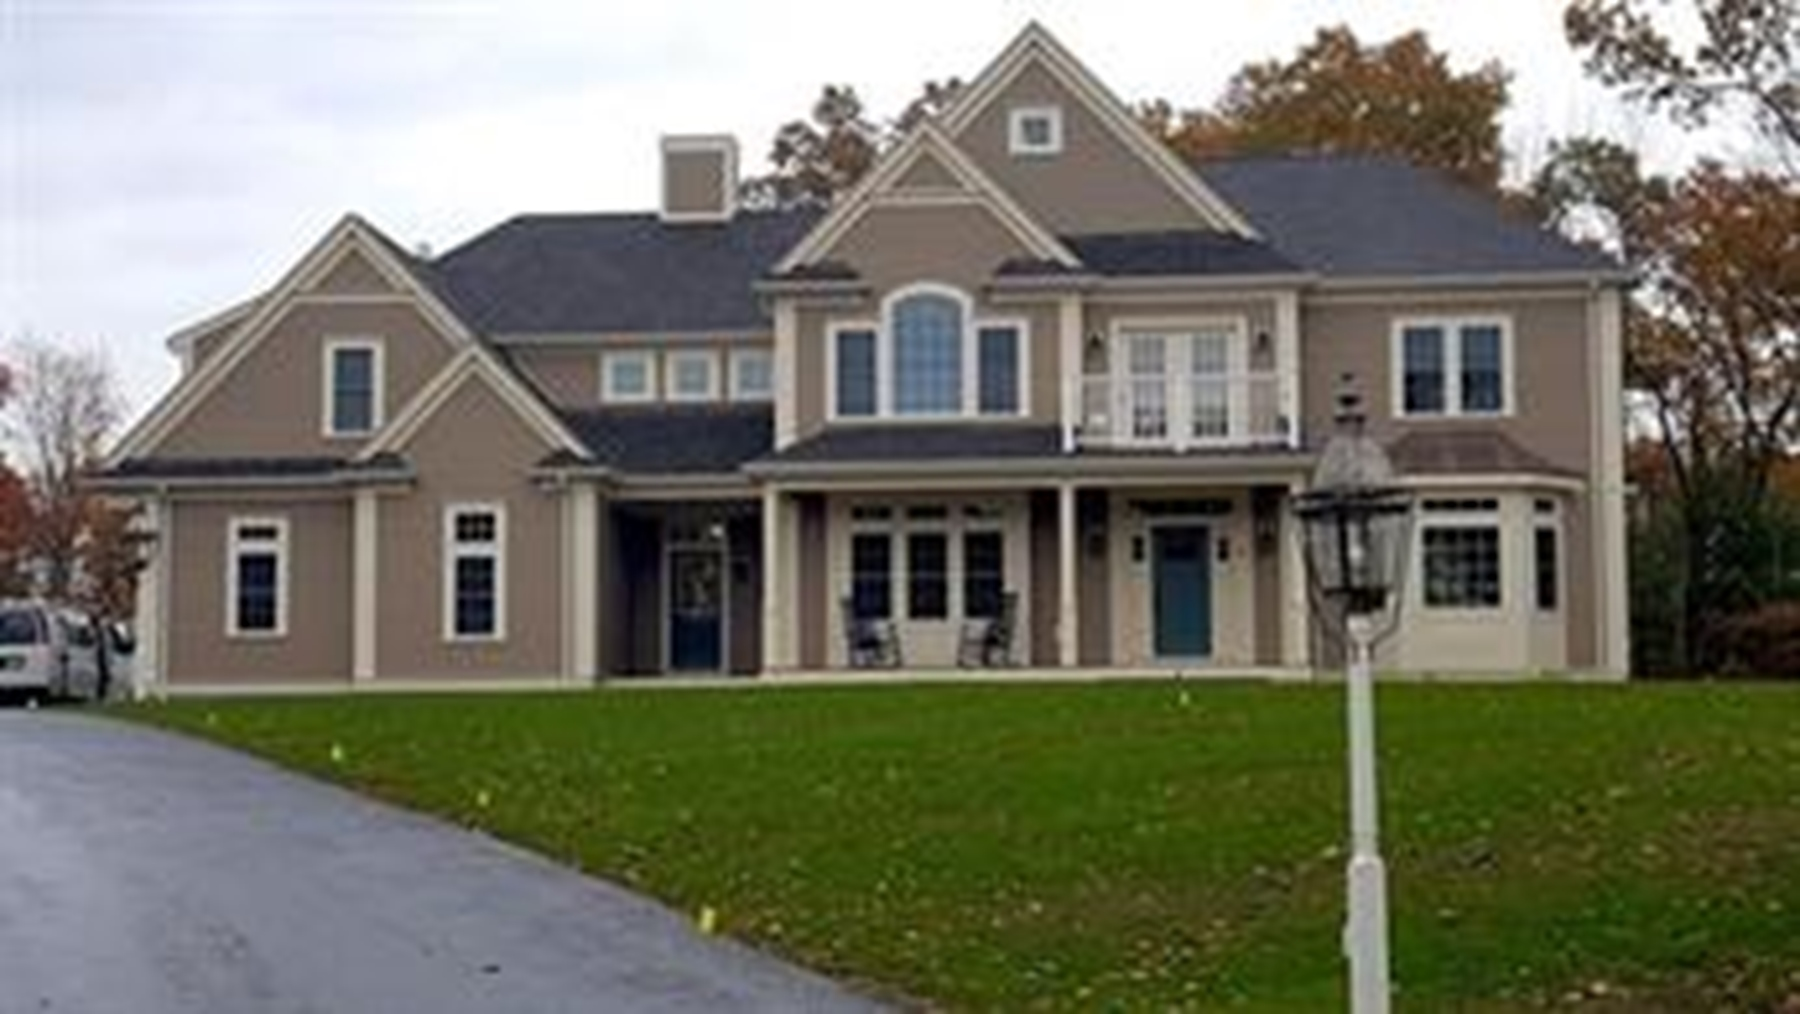 Single Family Home for Sale at Highland Park New Construction Elegant Designs Lot 22 Stoney Brook Road Hopkinton, Massachusetts 01748 United States